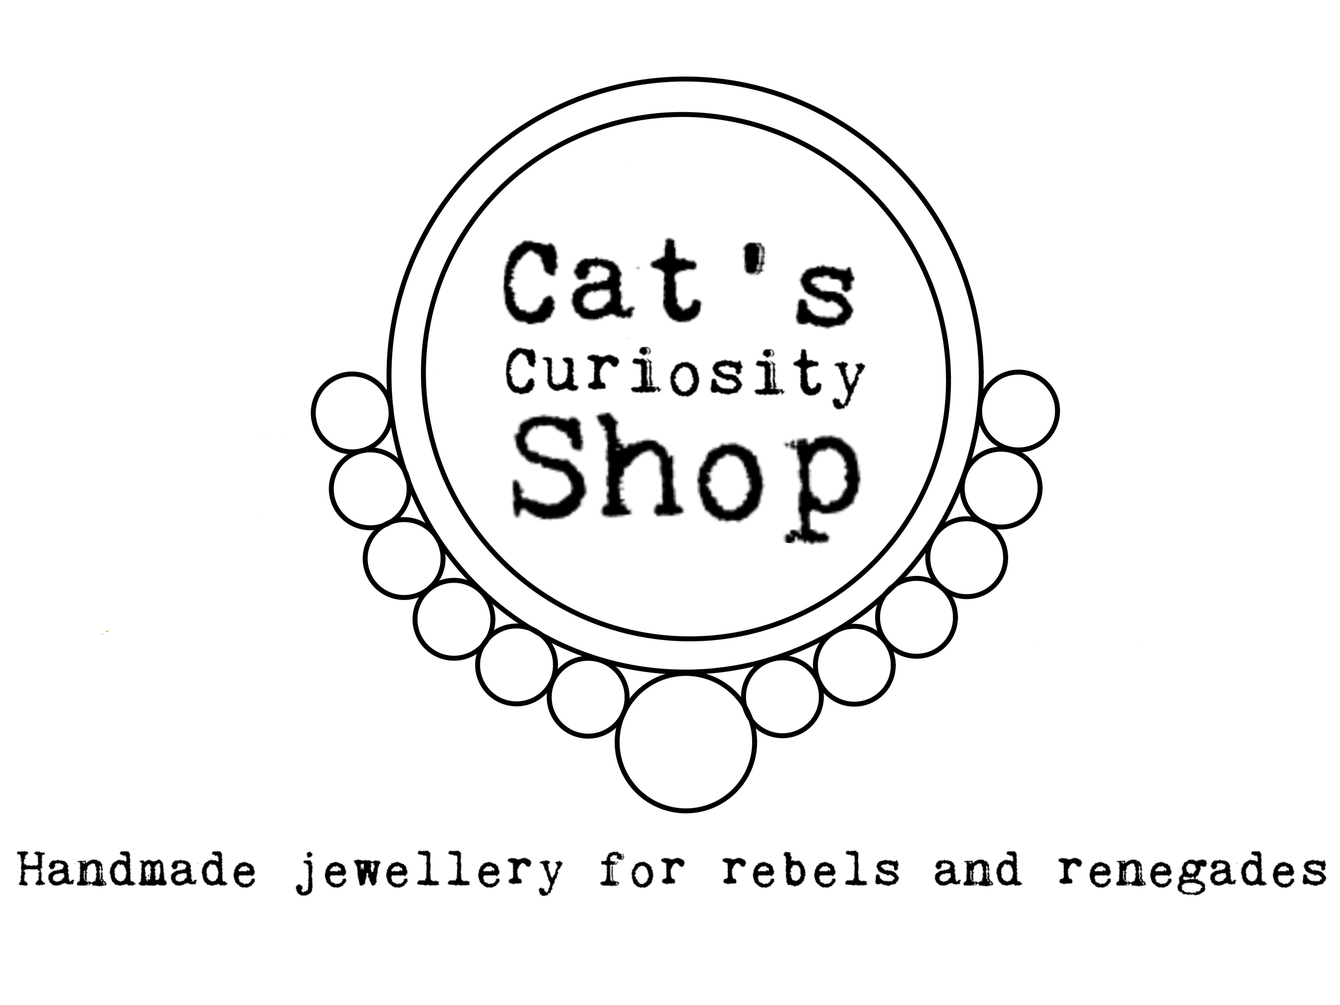 Cat's Curiosity Shop